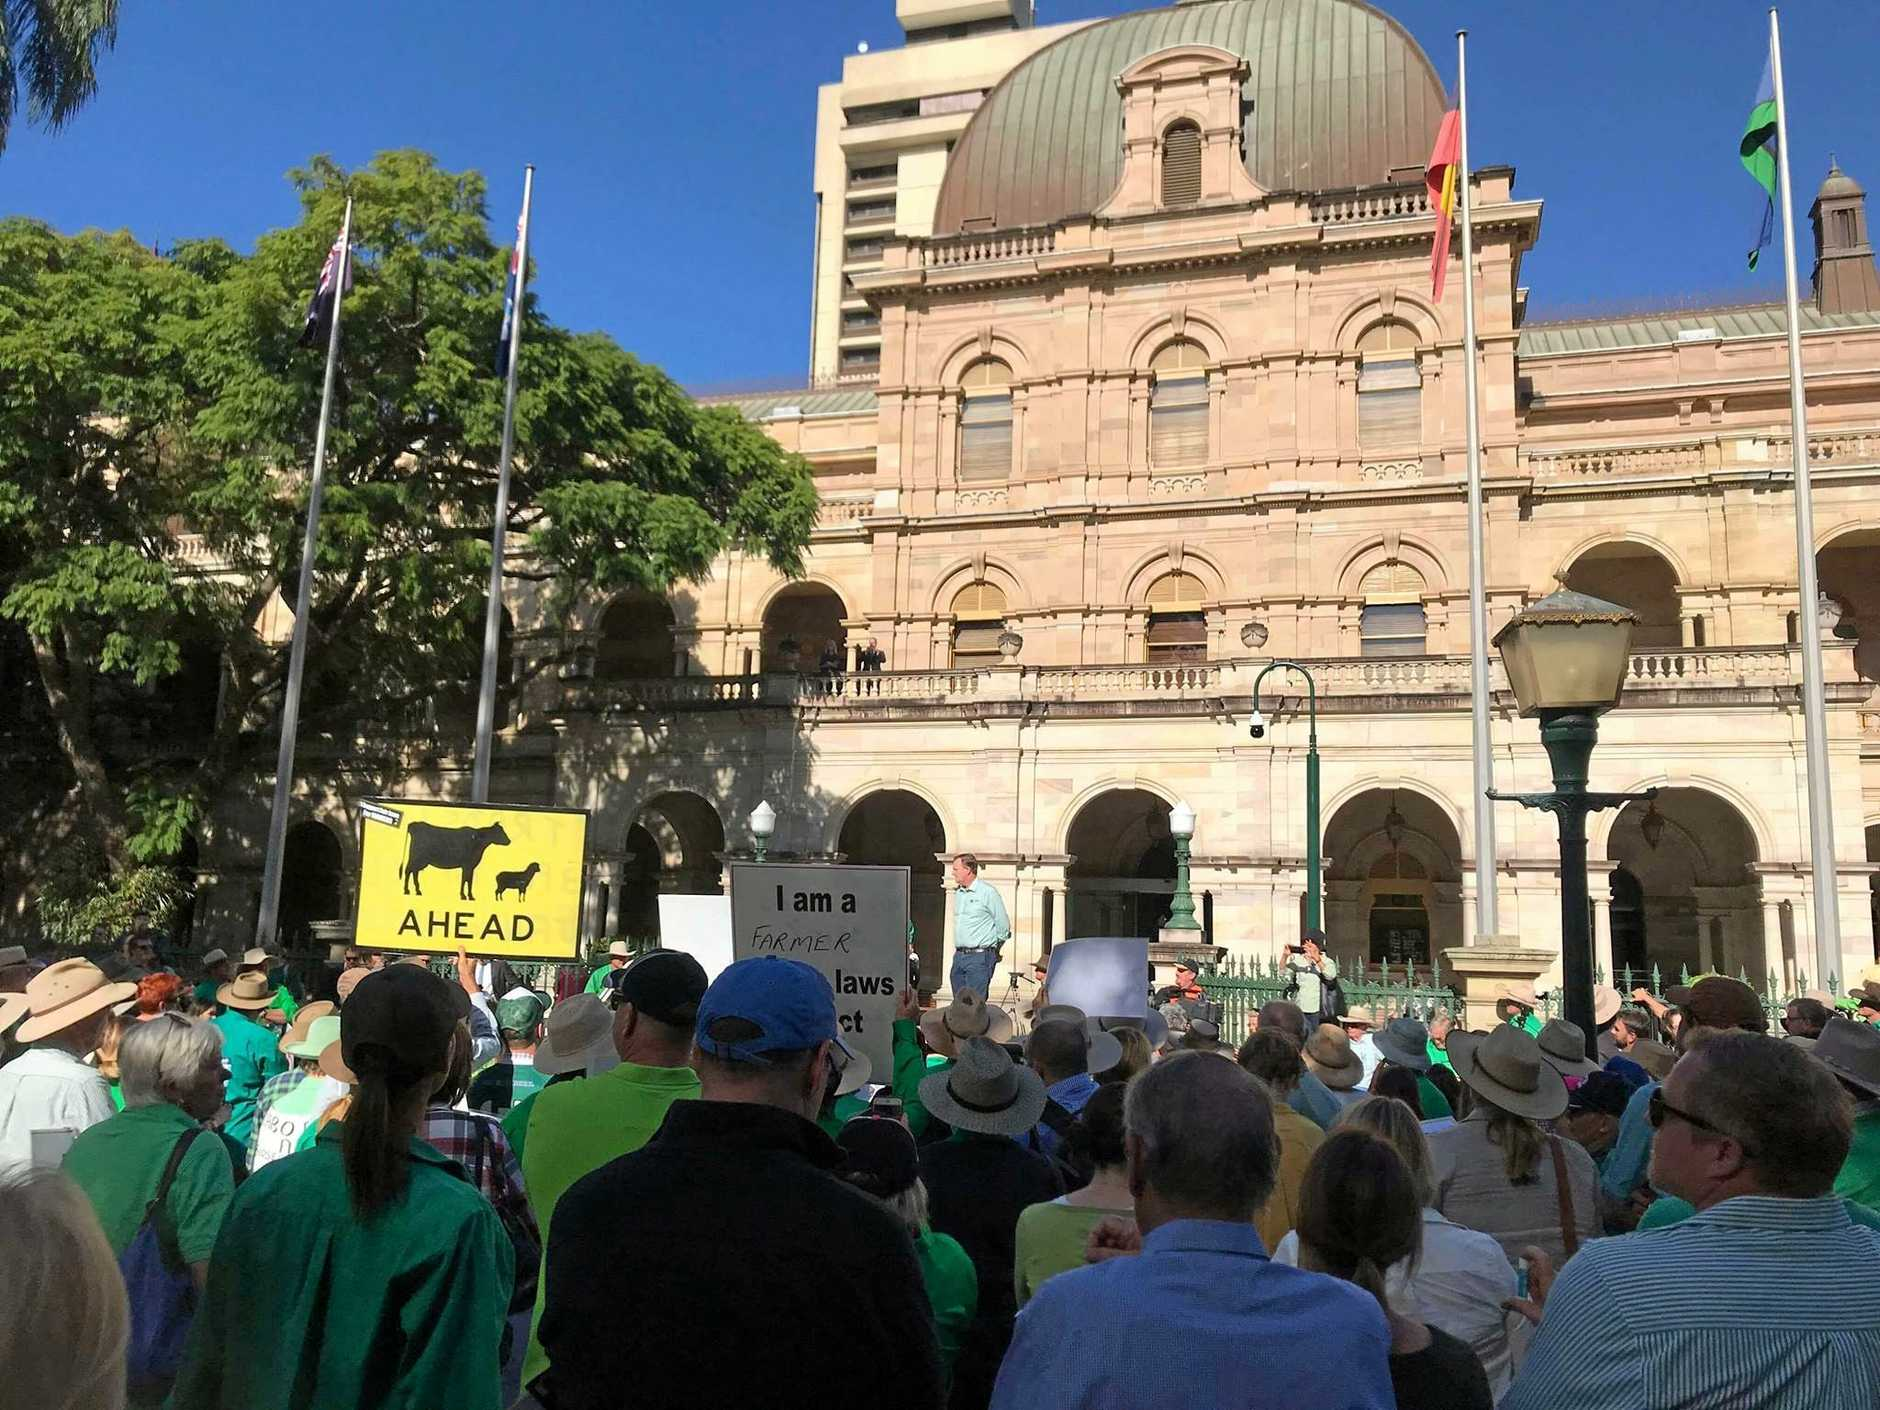 STRONG CROWD: Over 500 people out the front of Qld Parliament House, Brisbane making their voices heard. Proposed new vegetation laws will mean that 1.7 million hectares of developed farming land will be locked up, with no compensation. This legislation is devastating for Queensland farmers, restricting their use of their own land.